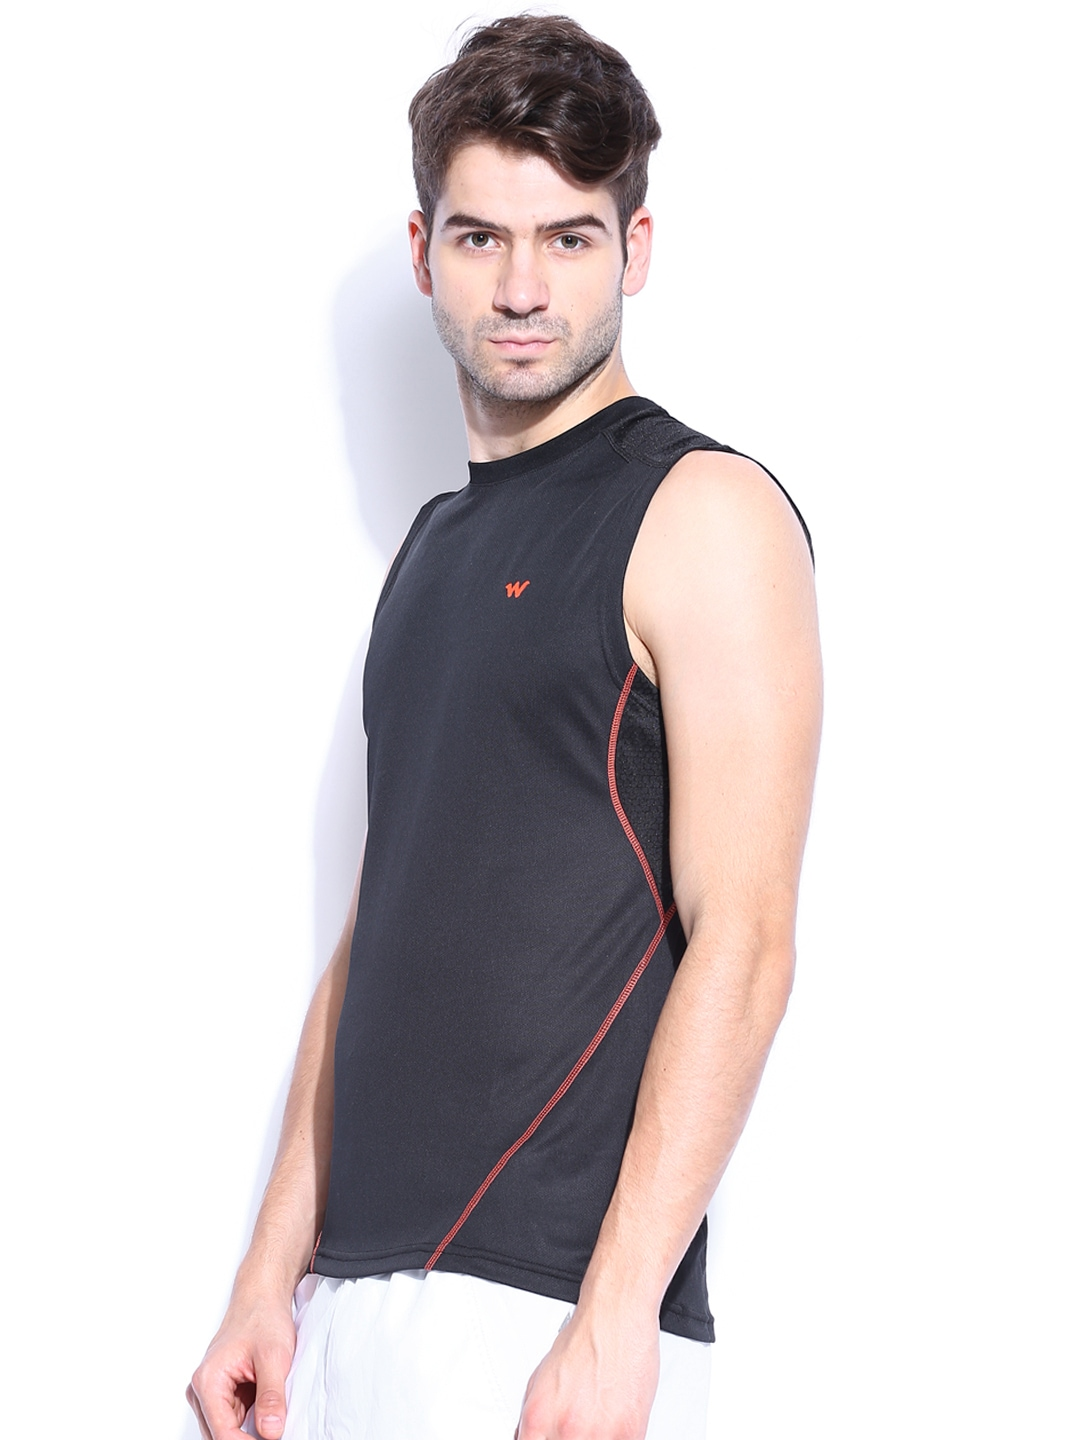 Shop Floryday for affordable Sleeveless T-shirts. Floryday offers latest ladies' Sleeveless T-shirts collections to fit every occasion.